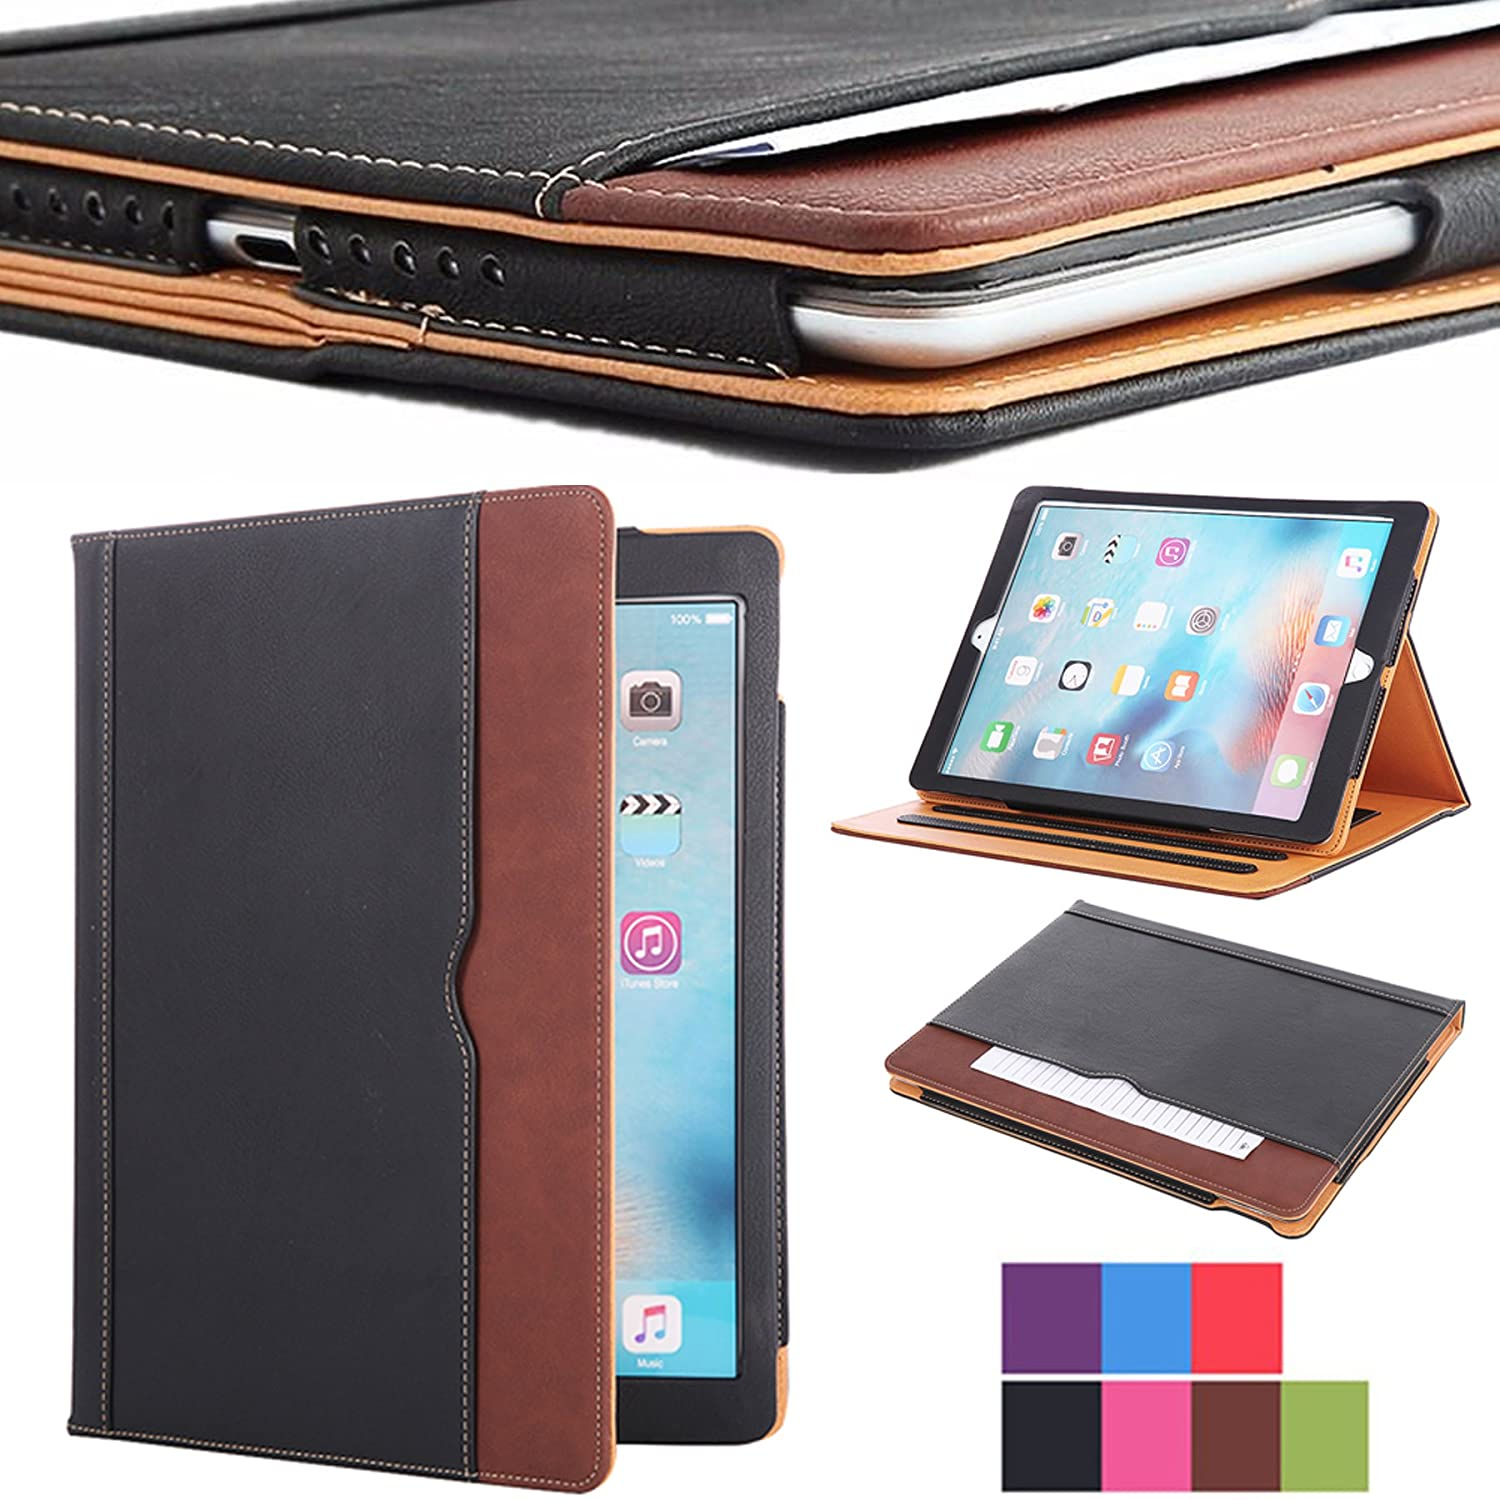 super popular b96c6 f05b0 I4Ucase Apple iPad 2 / iPad 3 / iPad 4 Case - Soft Leather Stand Folio Case  Cover for iPad 2 3 4 Generation, with Multiple Viewing Angles, Auto ...